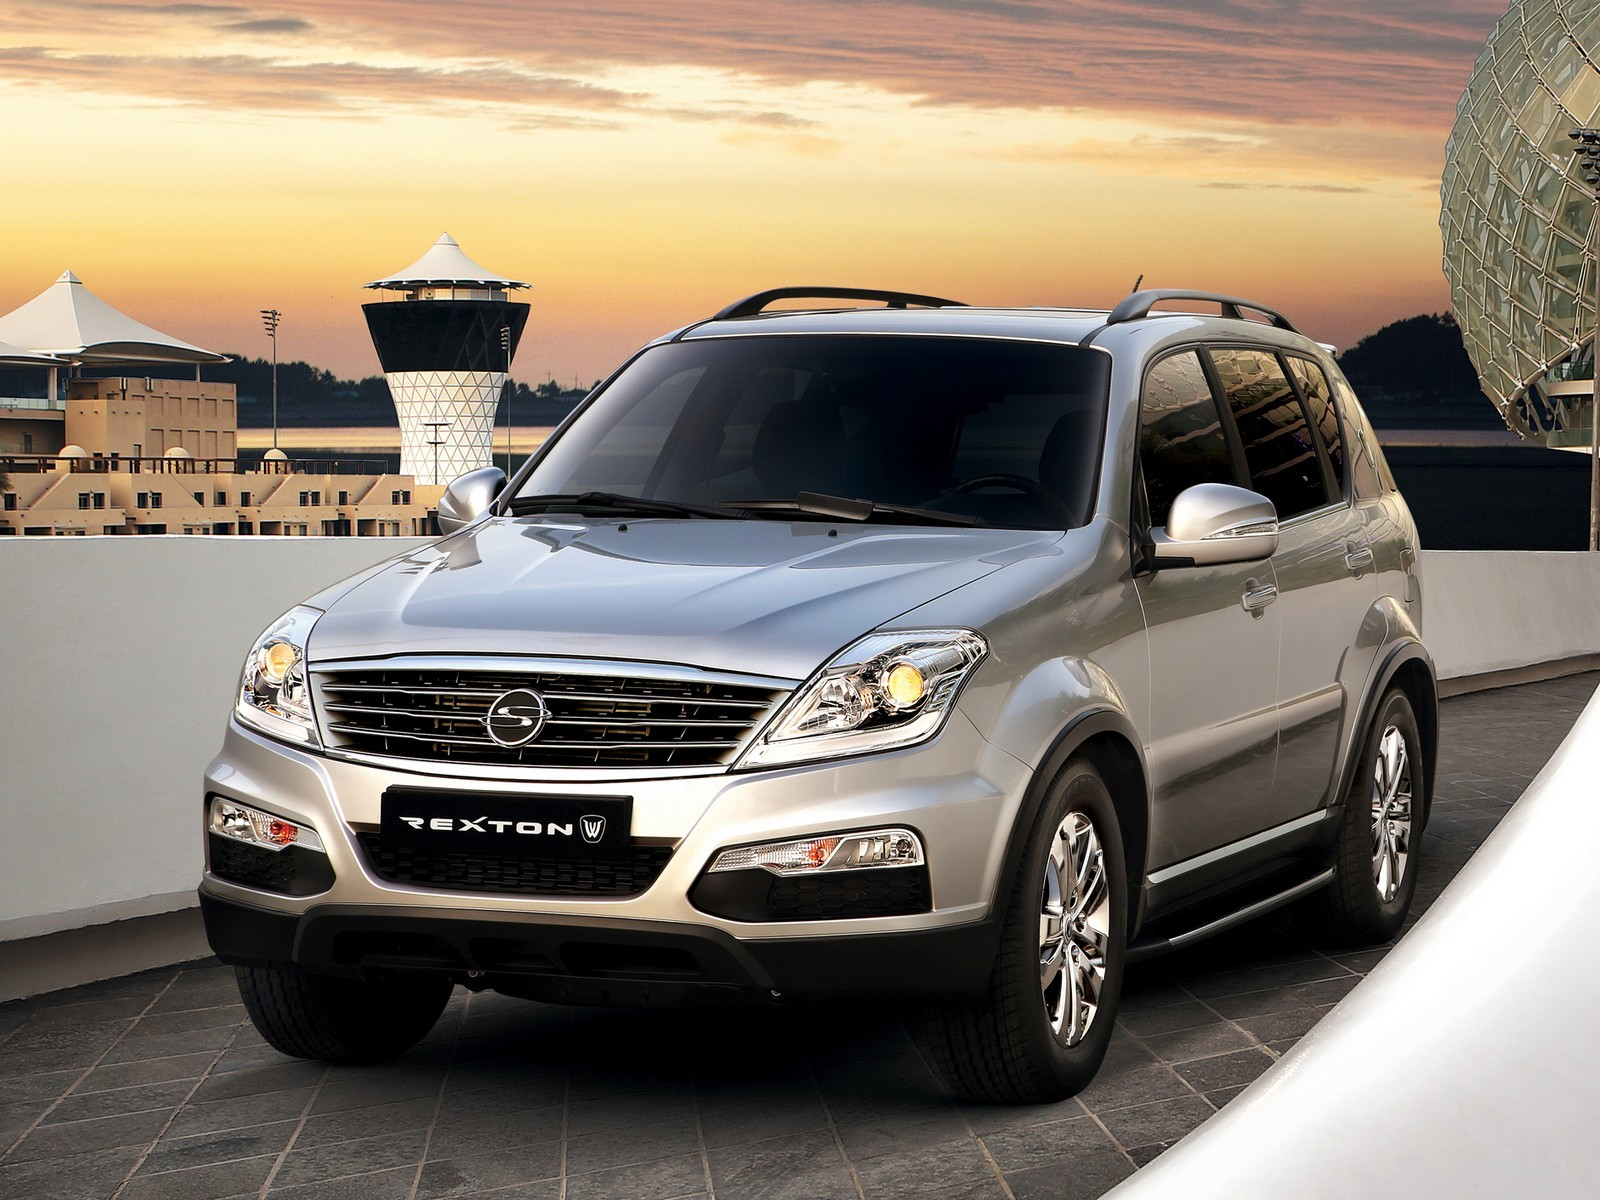 ssangyong rexton w 3. Black Bedroom Furniture Sets. Home Design Ideas